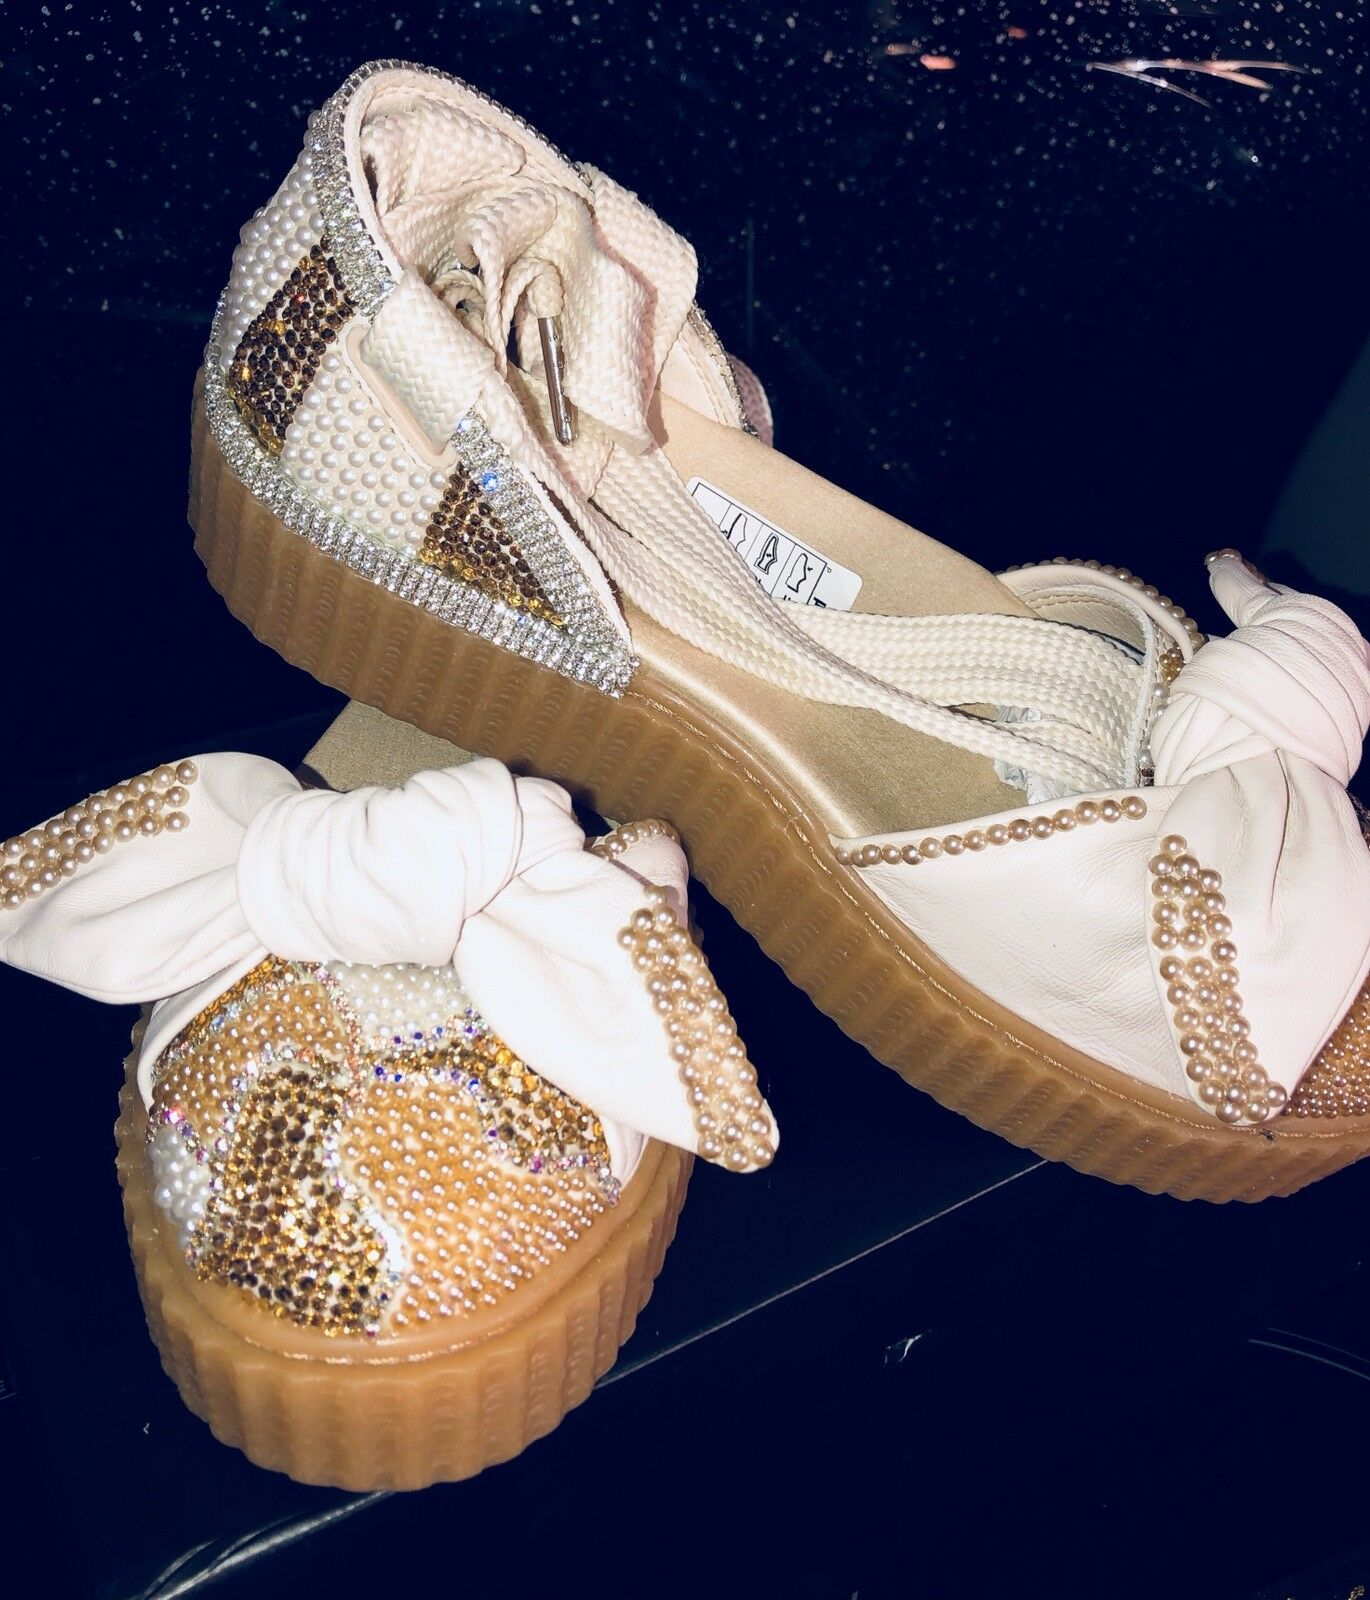 FINAL REDUCTION Ballet Customised Crystal Puma X Fenty Creeper Ballet REDUCTION Lace Rihanna 5 fdffa0